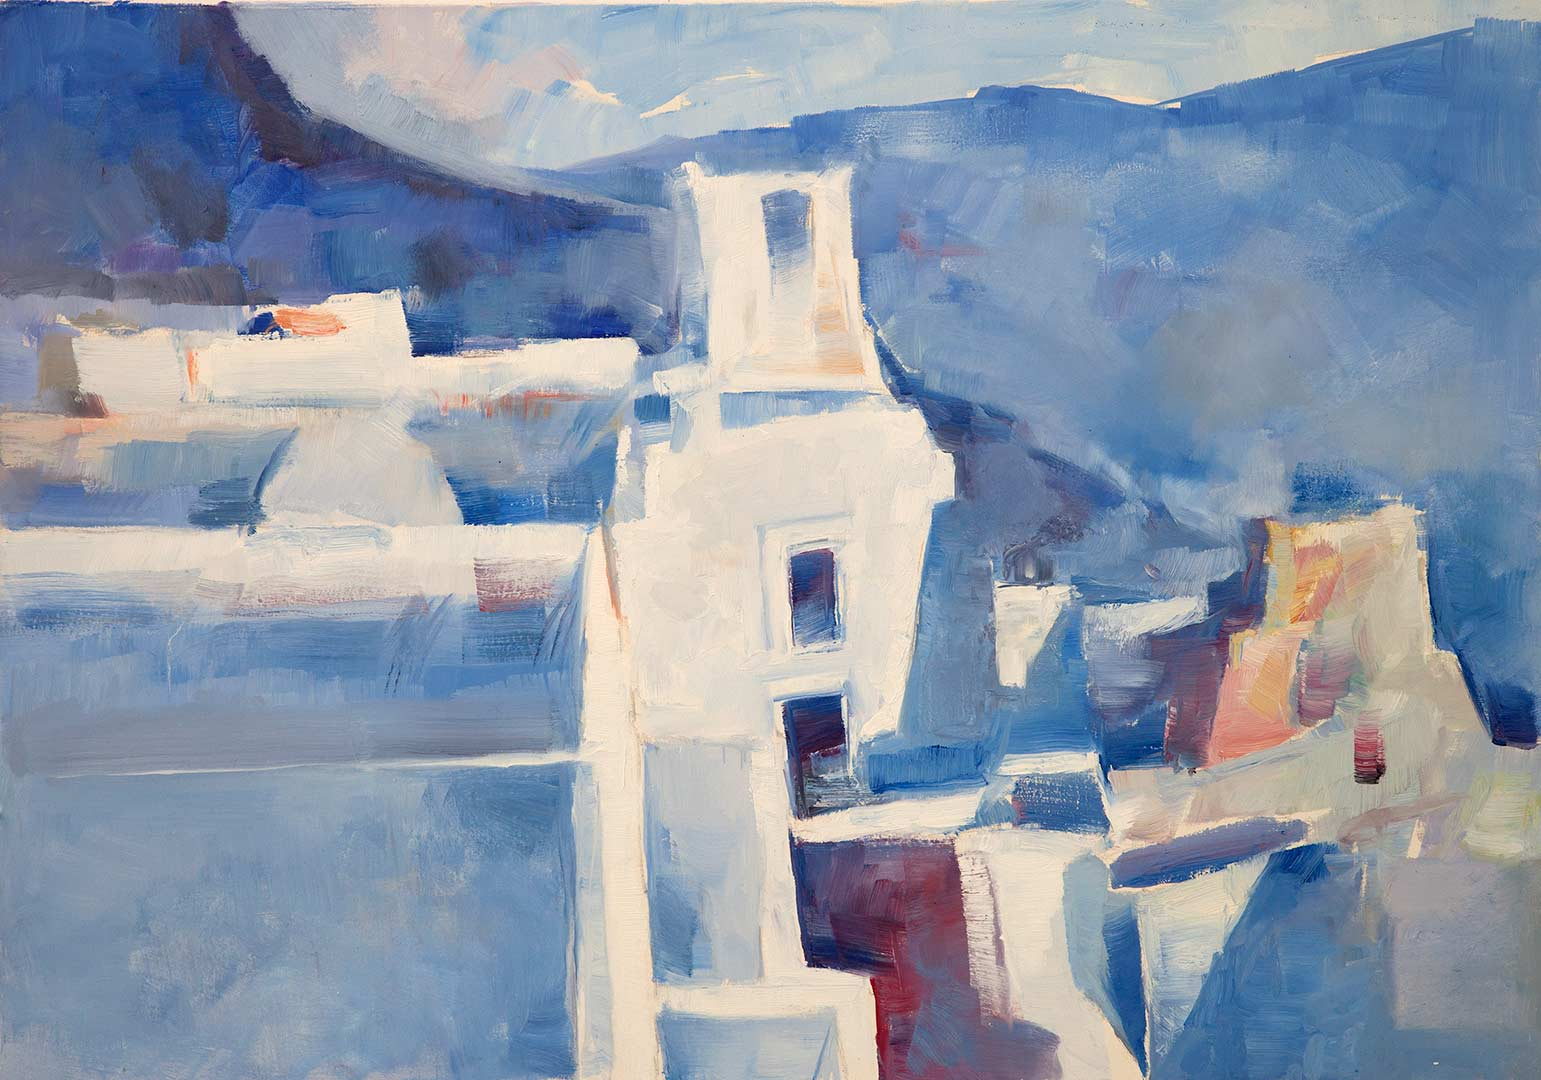 Oia painting by Christoforos Asimis